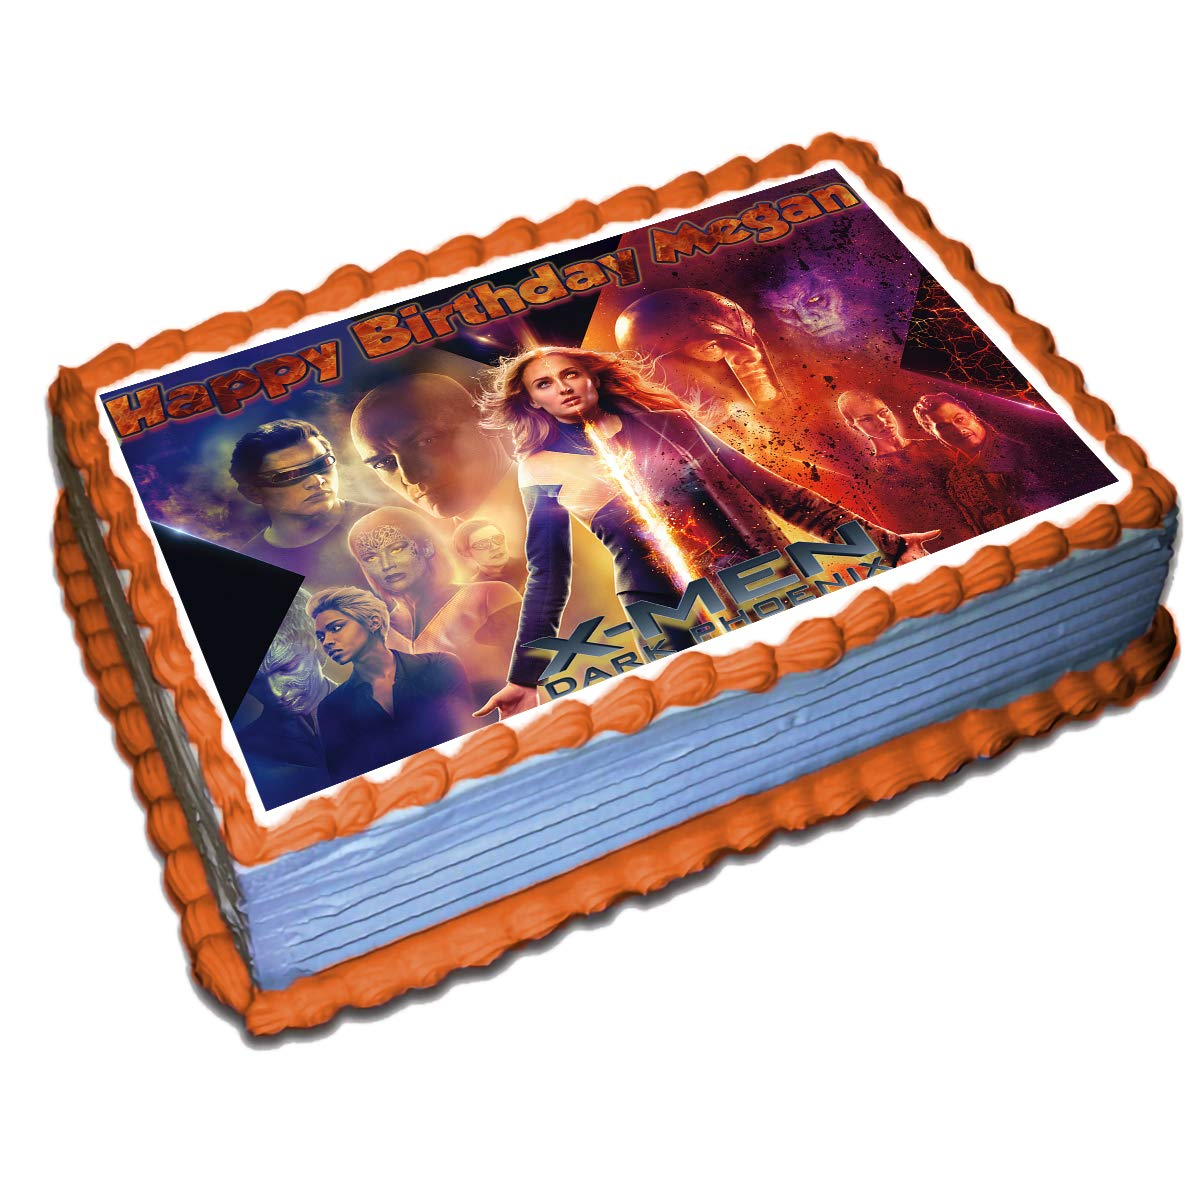 Awesome X Men Dark Phoenix Personalized Cake Topper Icing Sugar Paper 8 5 Funny Birthday Cards Online Barepcheapnameinfo